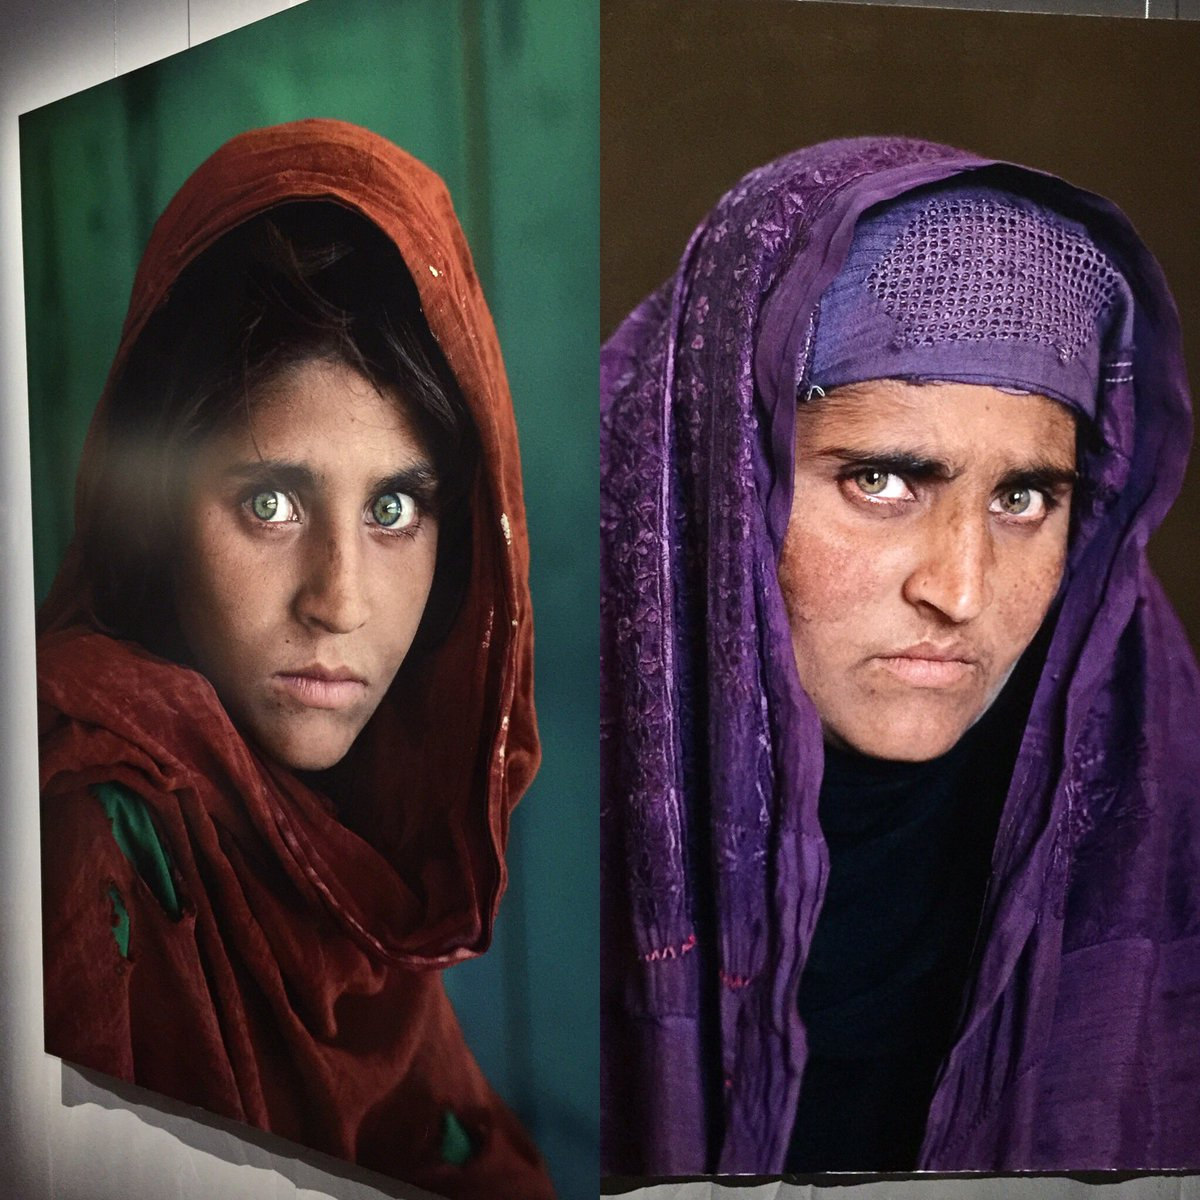 What does afghan girl look like now